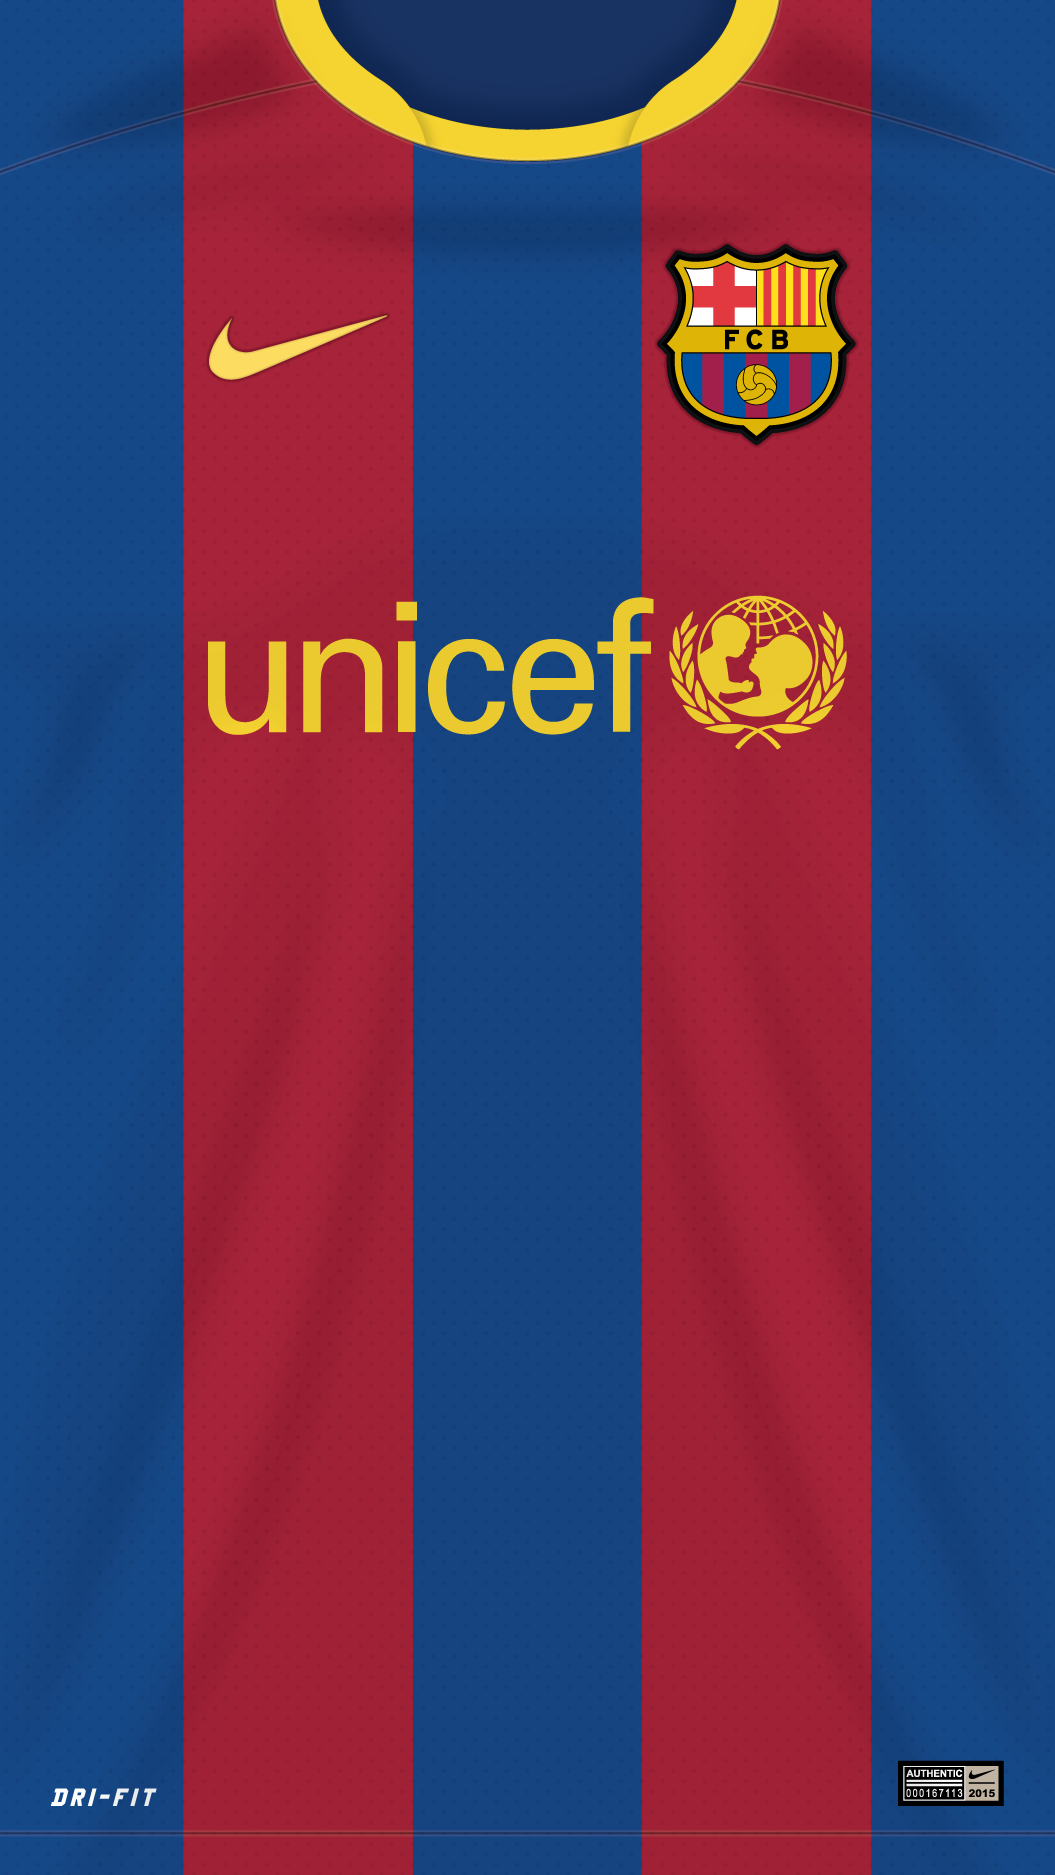 Wallpaper iphone barcelona - Barcelona Classics 2004 05 Home Away 2010 11 Home Away 2014 15 Home